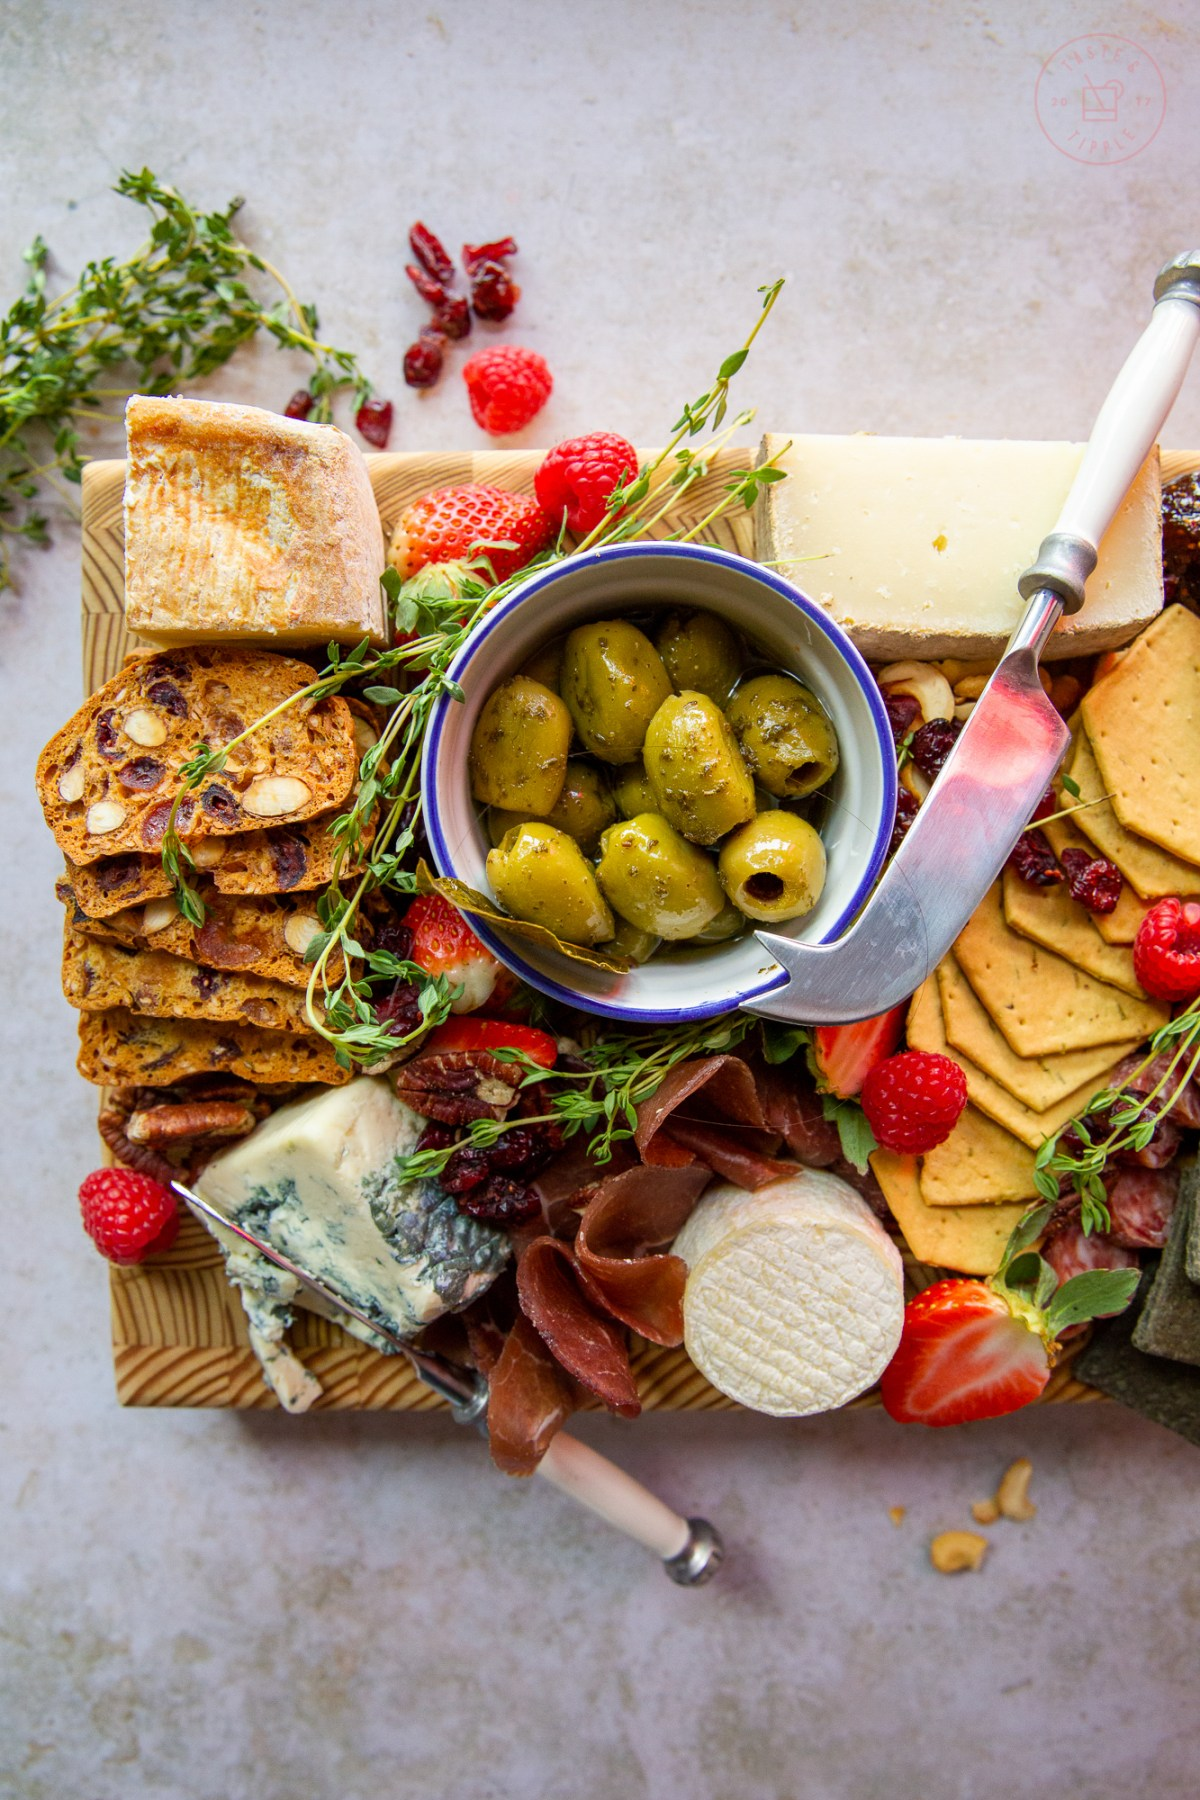 How to Build a Charcuterie Board | Taste and Tipple